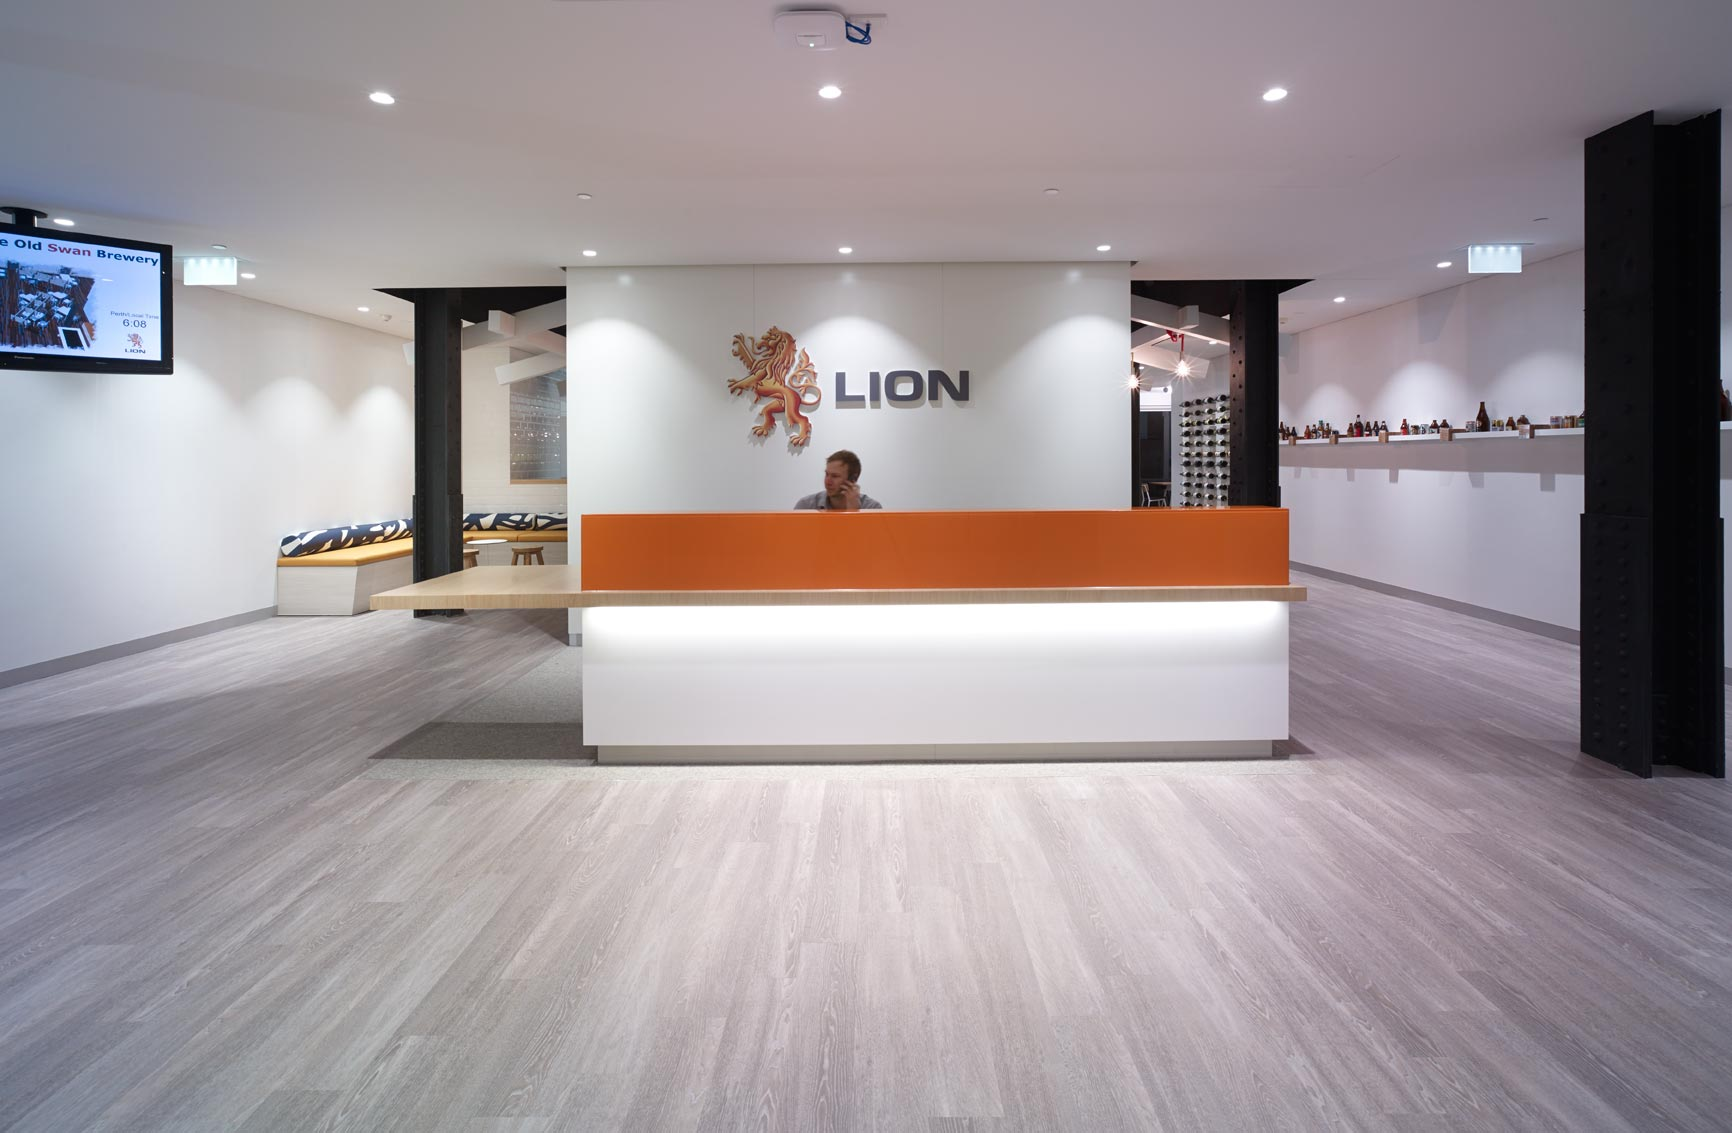 Lion Perth by PCG - 2